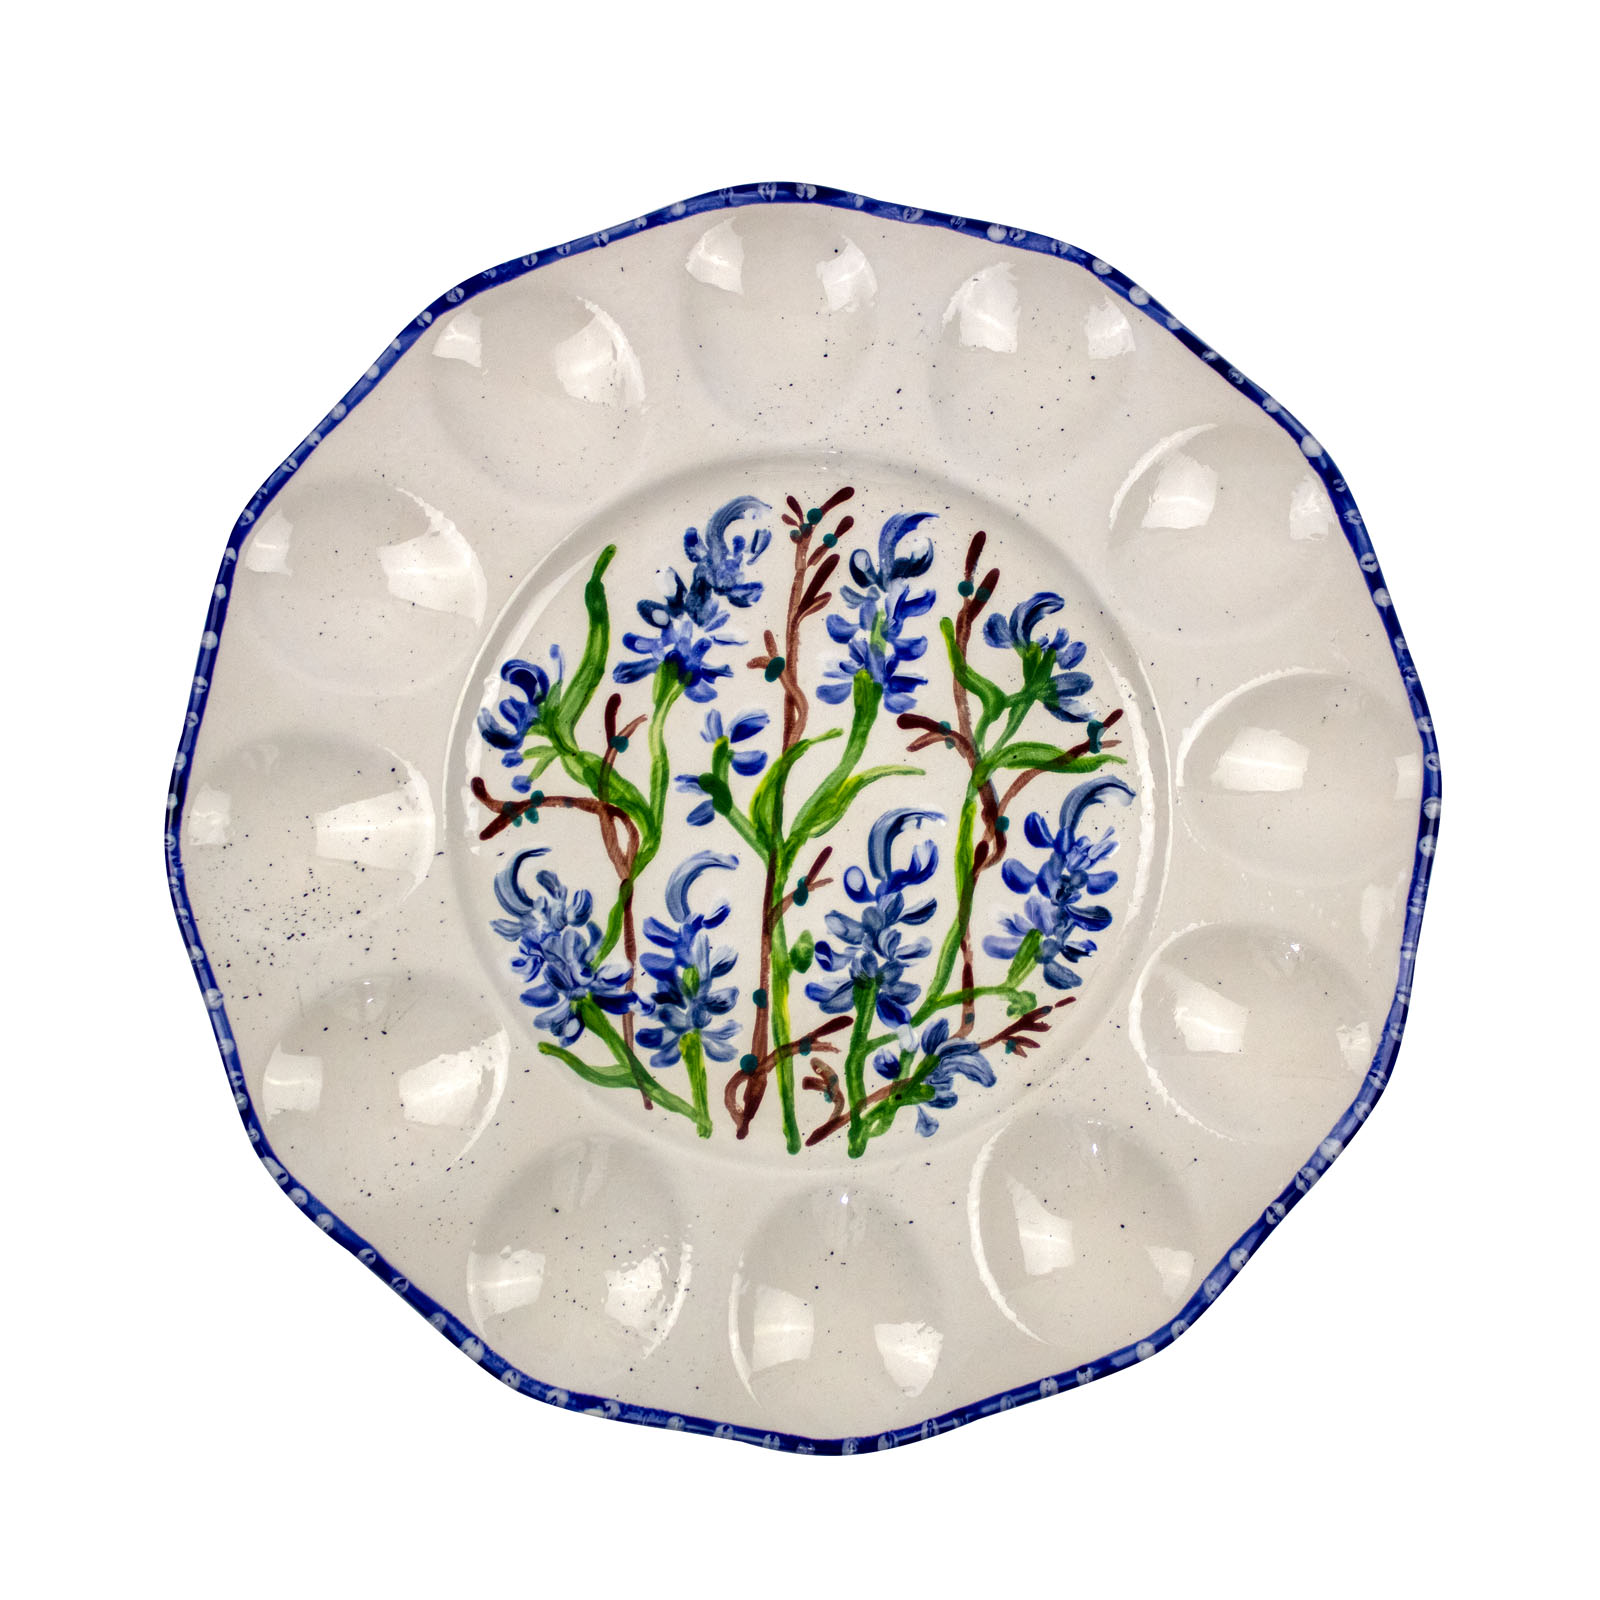 Bluebonnet Hand-Painted Ceramic Egg Tray